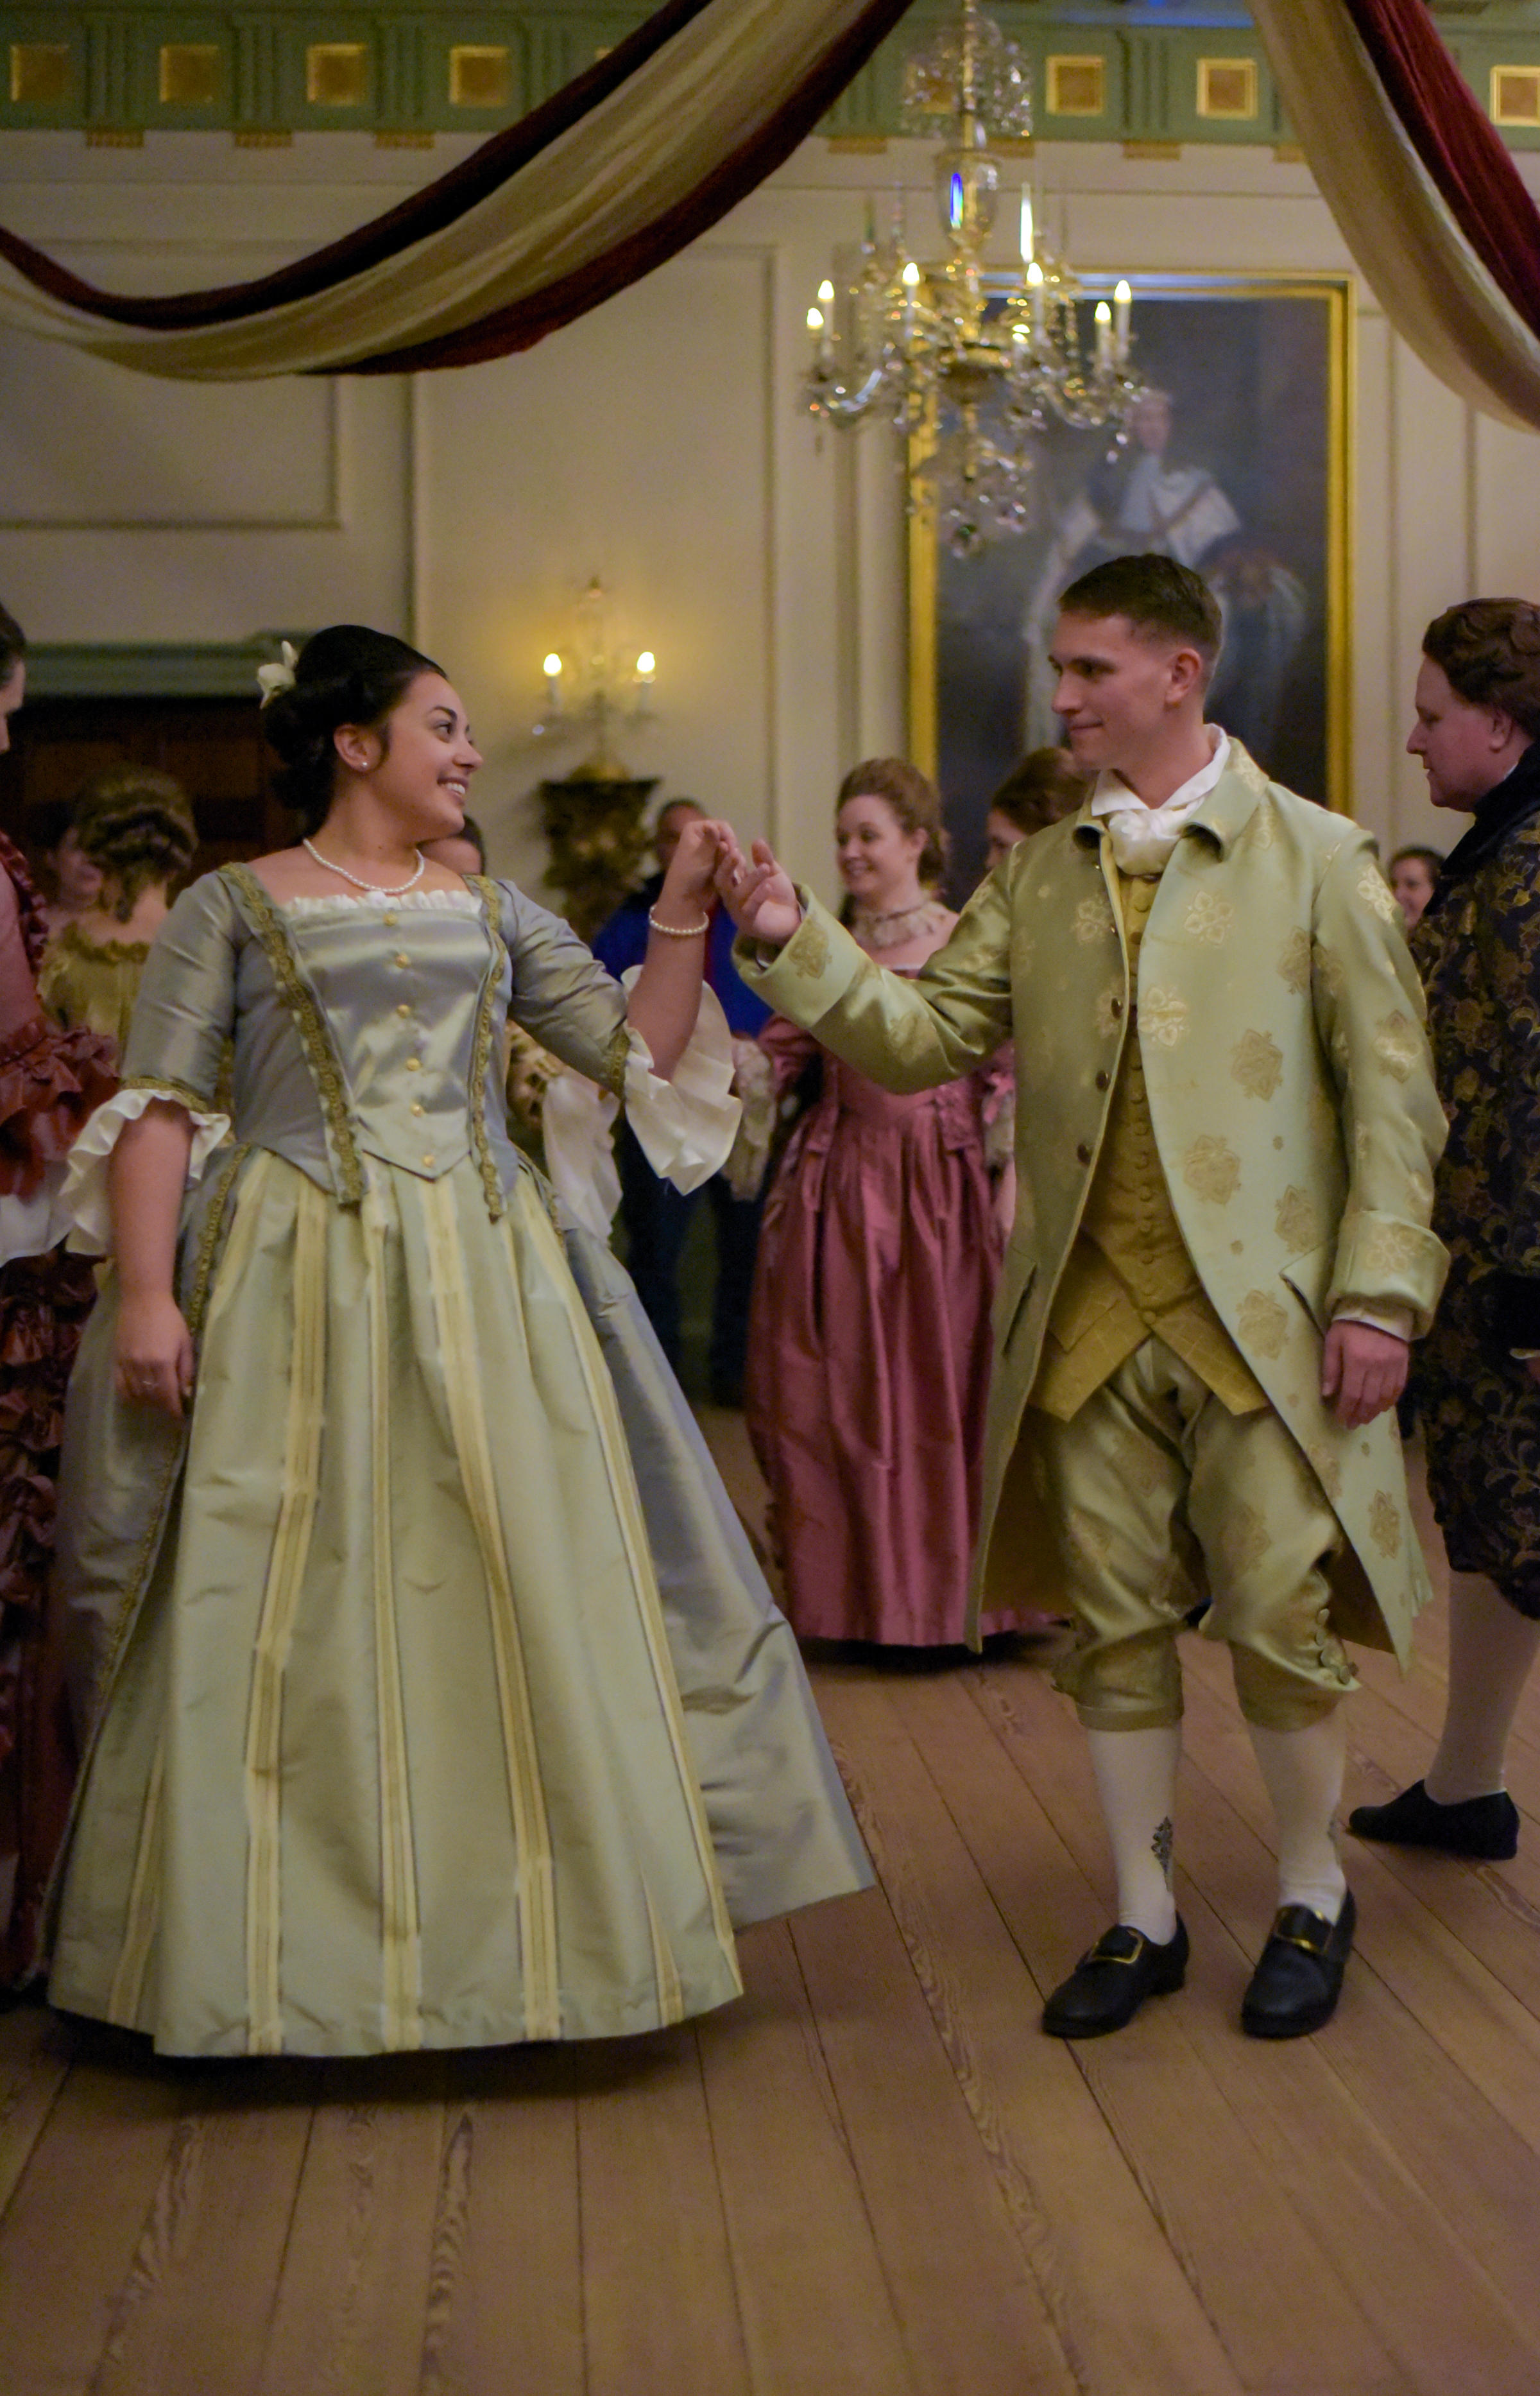 Christmas gown ideas 18th - Dancers In 18th Century Attire Dance In The Governor S Palace Council Chamber During Night One Of The 2016 Candlelight Colonial Christmas Celebration At